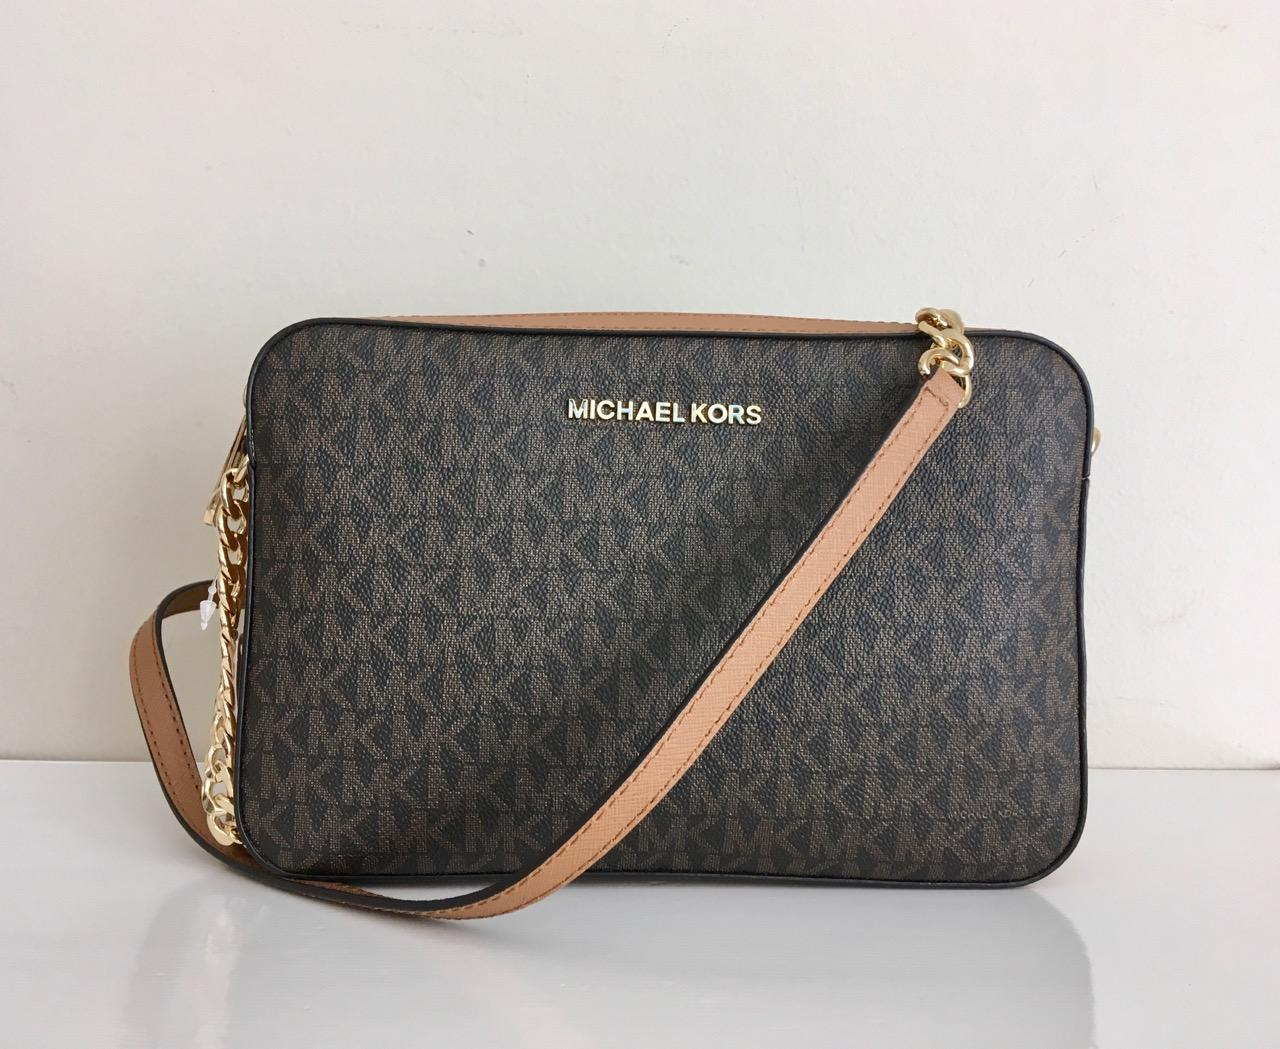 Authentic Michael Kors Jet Set Crossbody Bag  Slingbag MK Signature Bag   35F8STTC3B 3567e2936ac2b